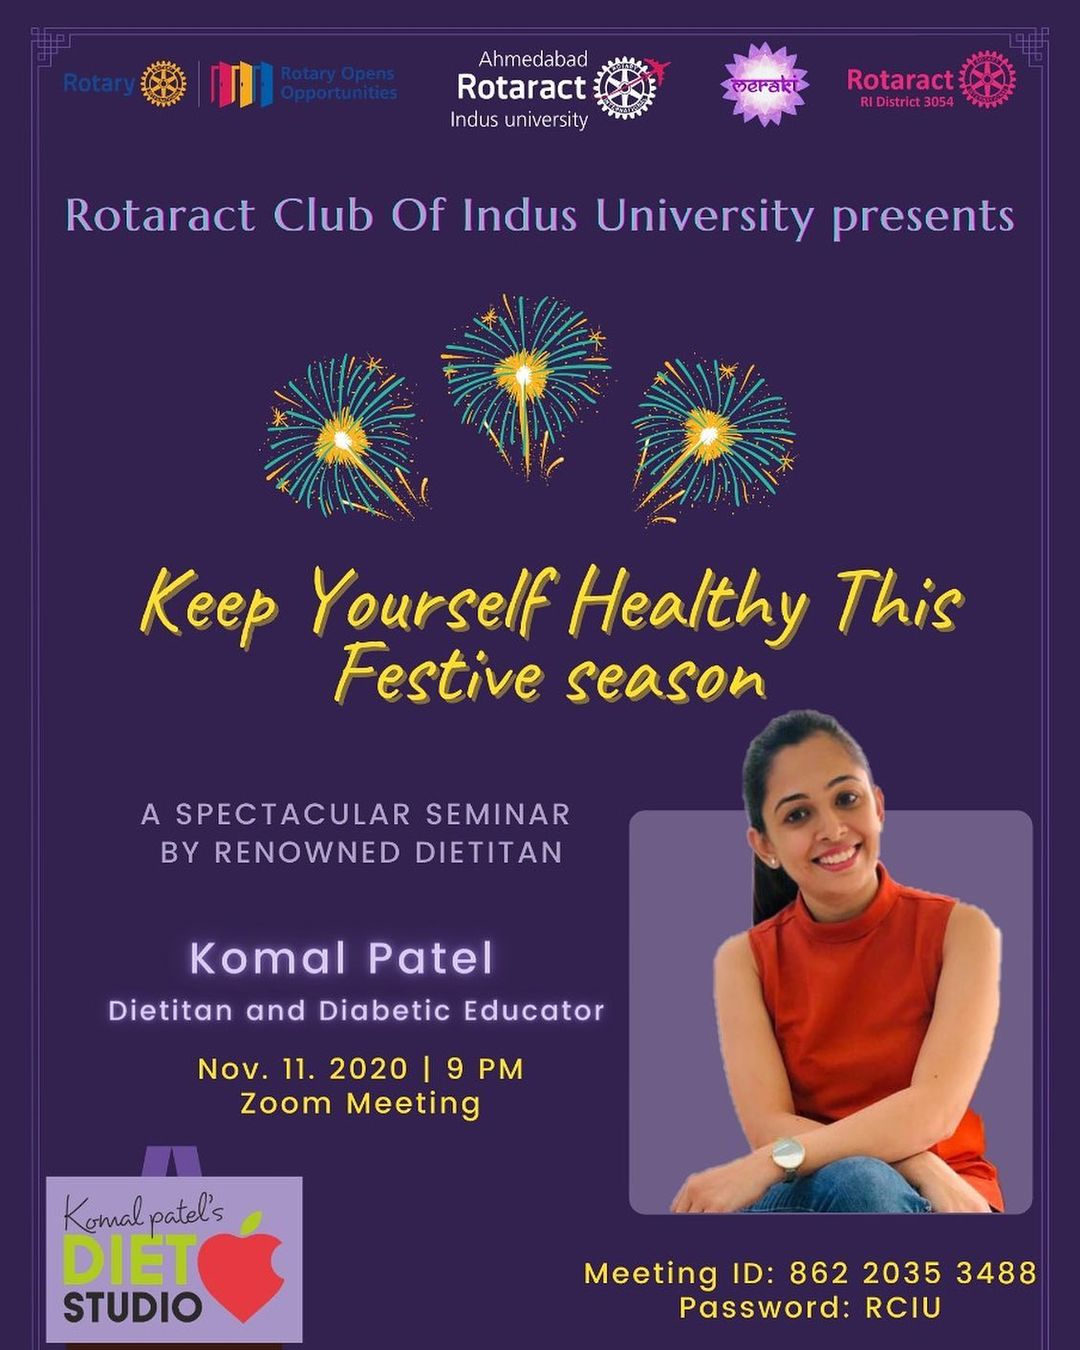 """""""Keep yourself healthy this festive season! """" an interactive session with dietitan and influencer Komal Patel.  Get to know how to keep yourself fit and not gaining those extra kilos while eating those kaju katris and rasgullas.   Here we are - Join us for one of the most Healthiest event this Diwali. The details of the event are given below.  Date -: 11 November 2020 (Wednesday) Time -: 9 PM zoom link-:  https://us05web.zoom.us/j/86220353488?pwd=eFliVGEzaHp1U3JST3ovWG9seUhIZz09  Meeting ID: 862 2035 3488 Passcode: RCIU Come join us to witness some amazing health tips!!"""